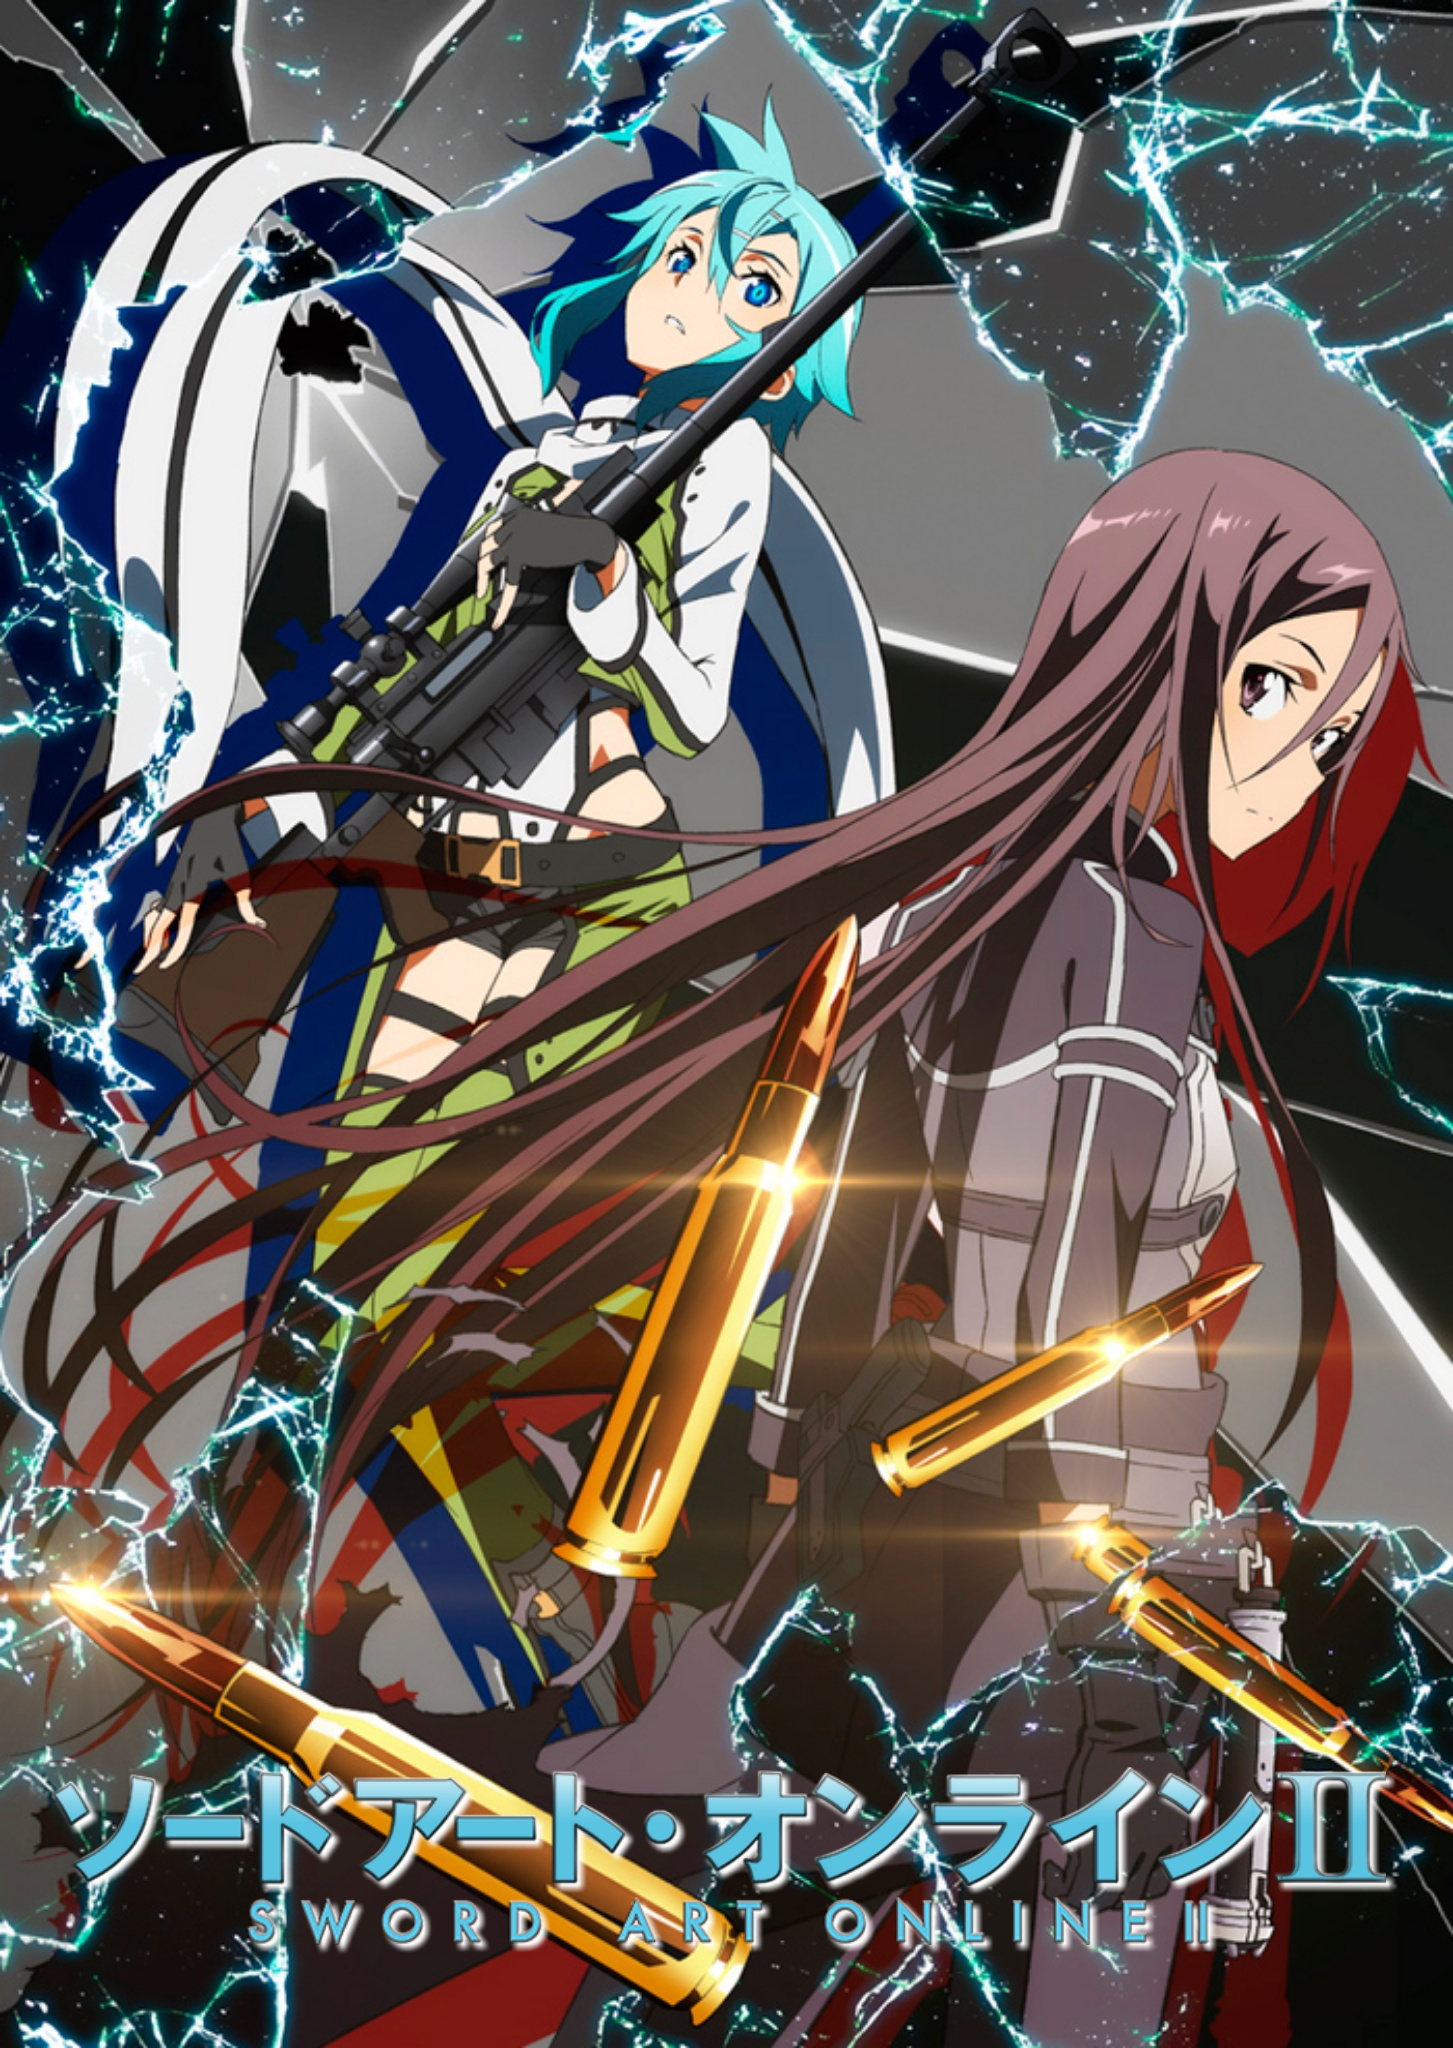 Sword Art Online II  | BDrip | Cast/Jap+Sub | 24/24| MKV-1080p | x264 Sword_Art_Online_II